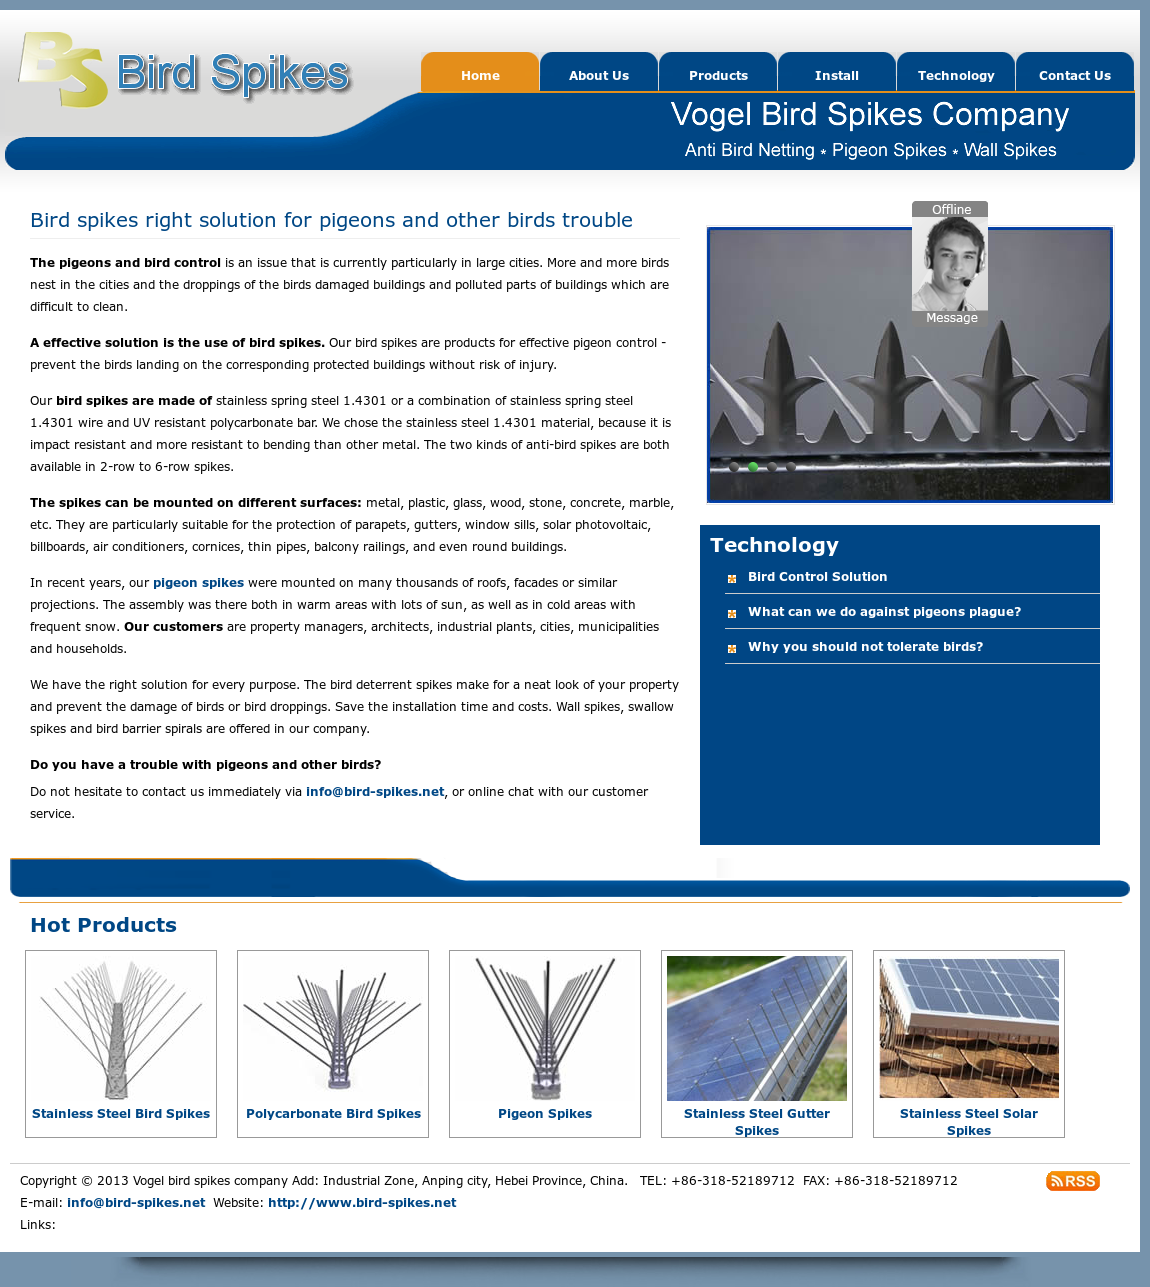 Vogel Bird Spikes Company Add Competitors, Revenue and